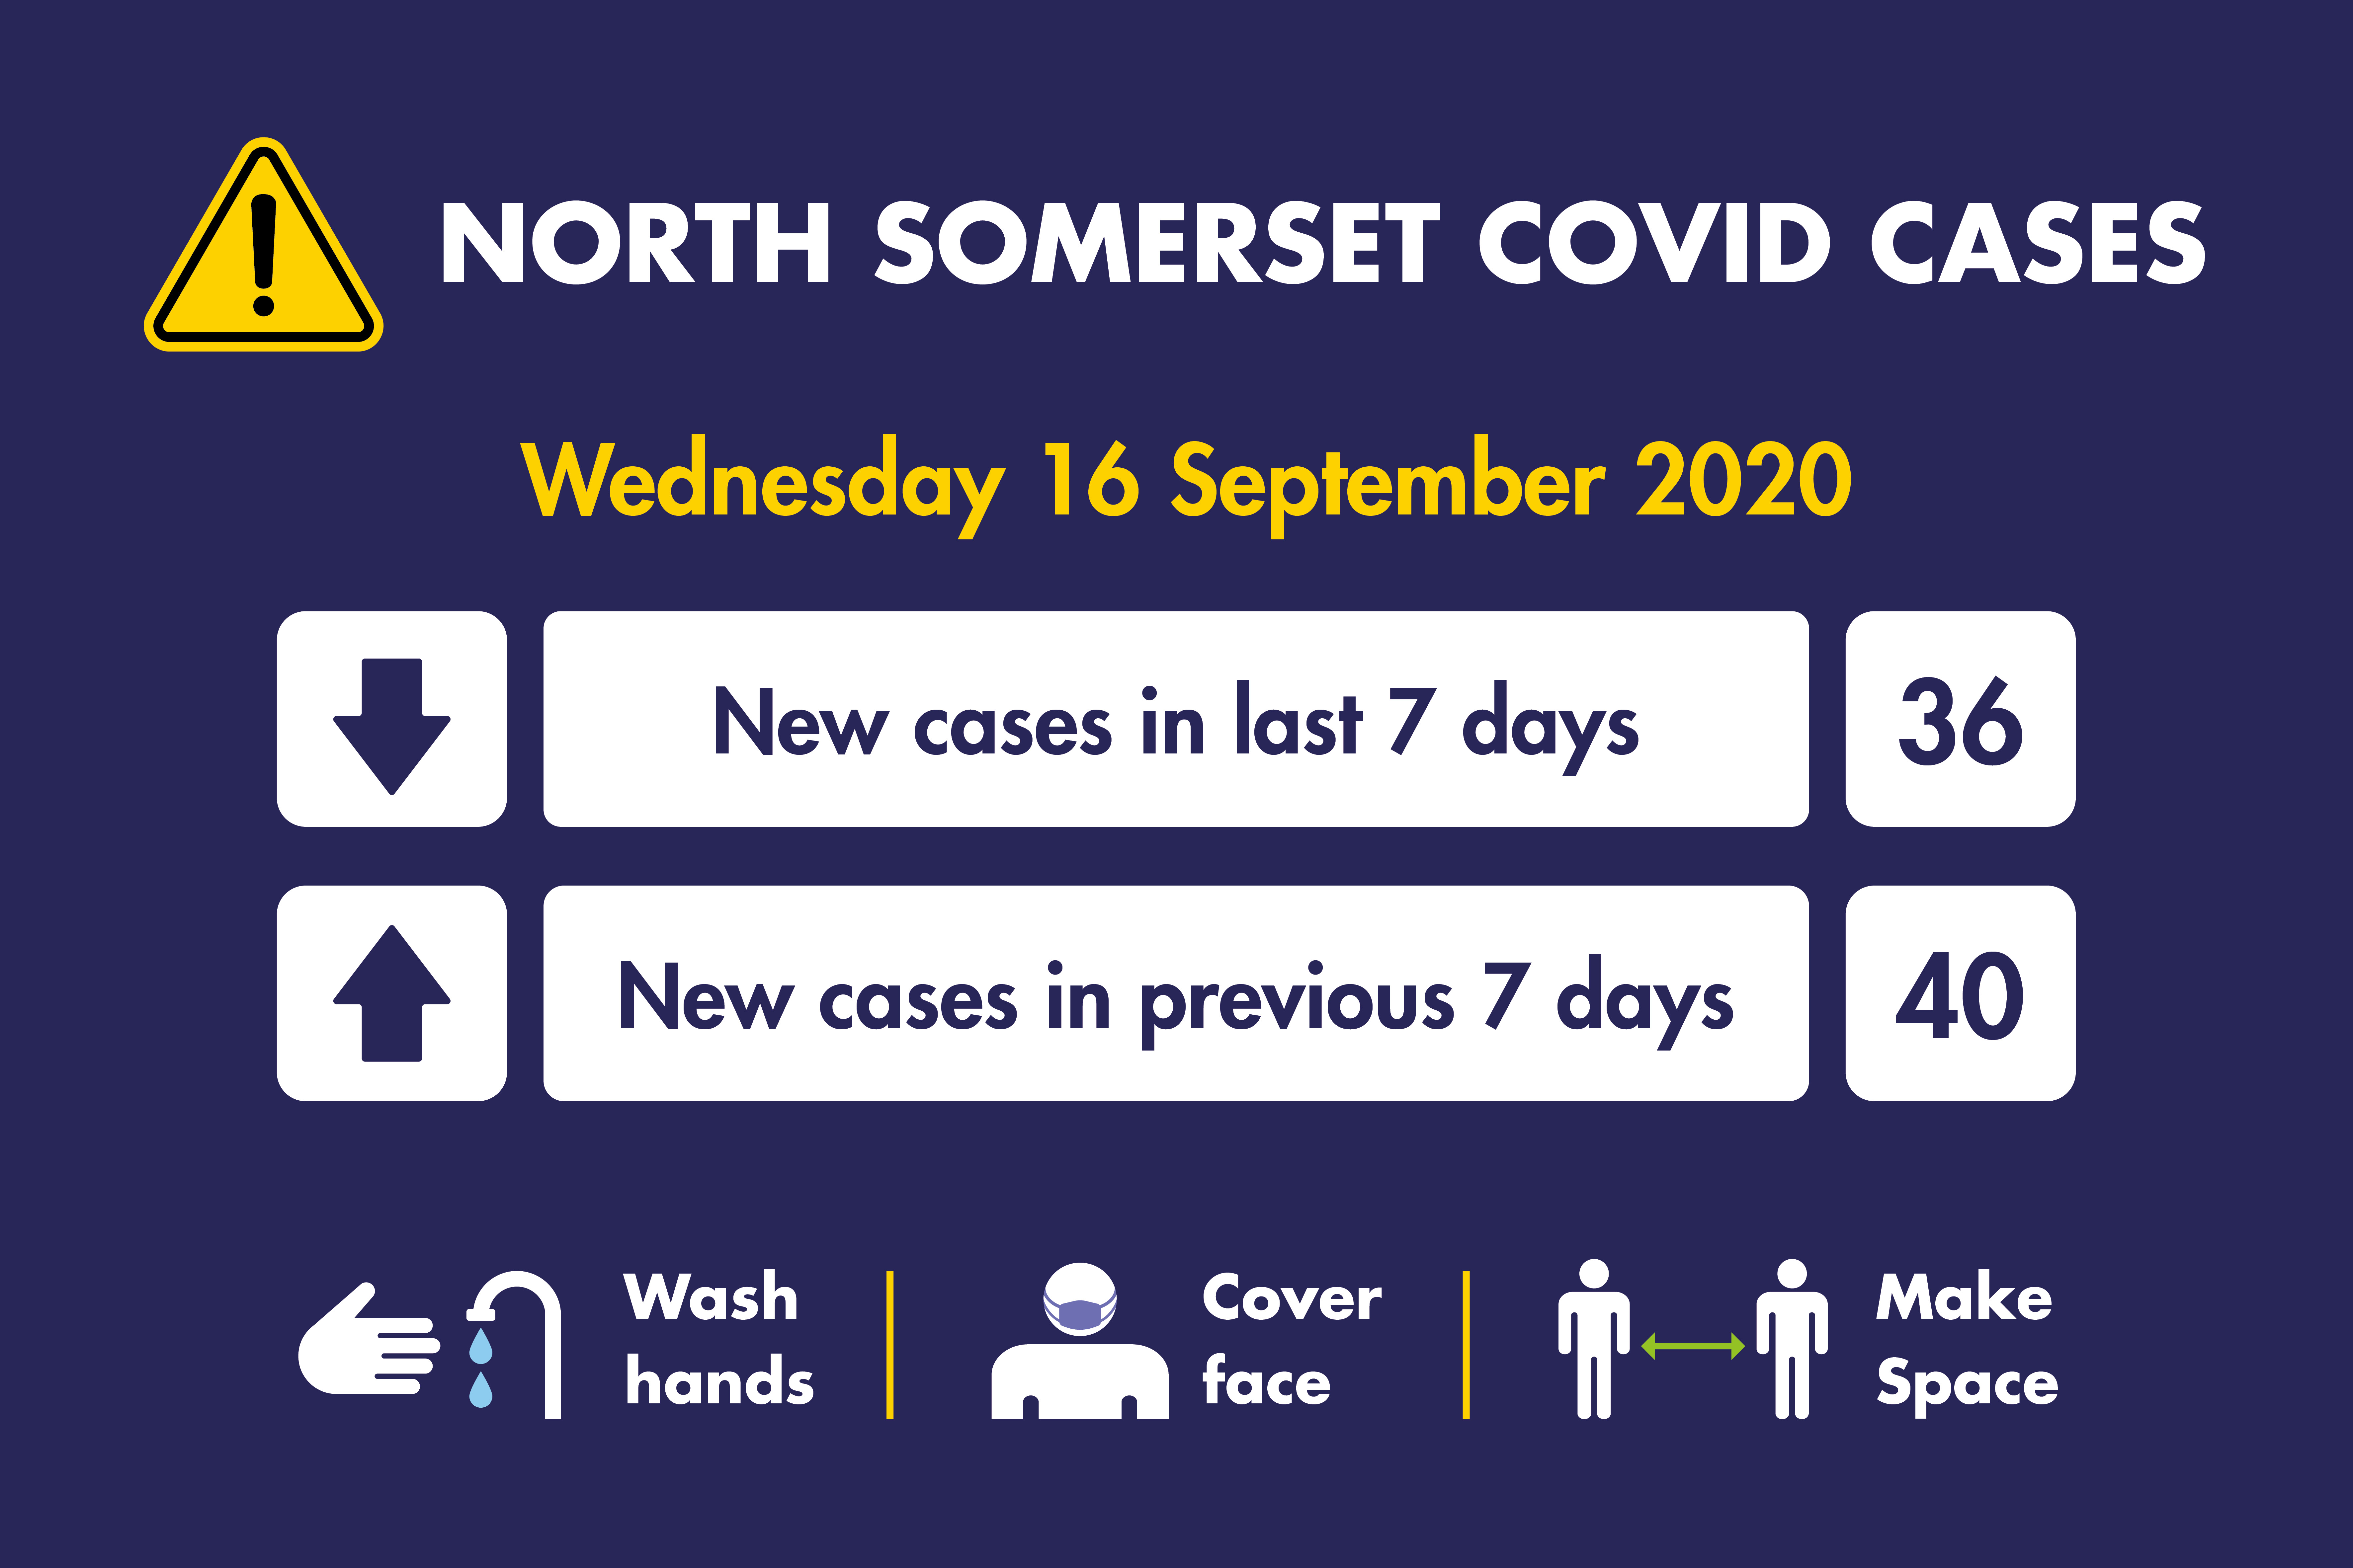 Infographic detailing new coronavirus cases as of Wednesday 16 September - there were 36 new cases in the last 7 days, compared with 40 the previous week.